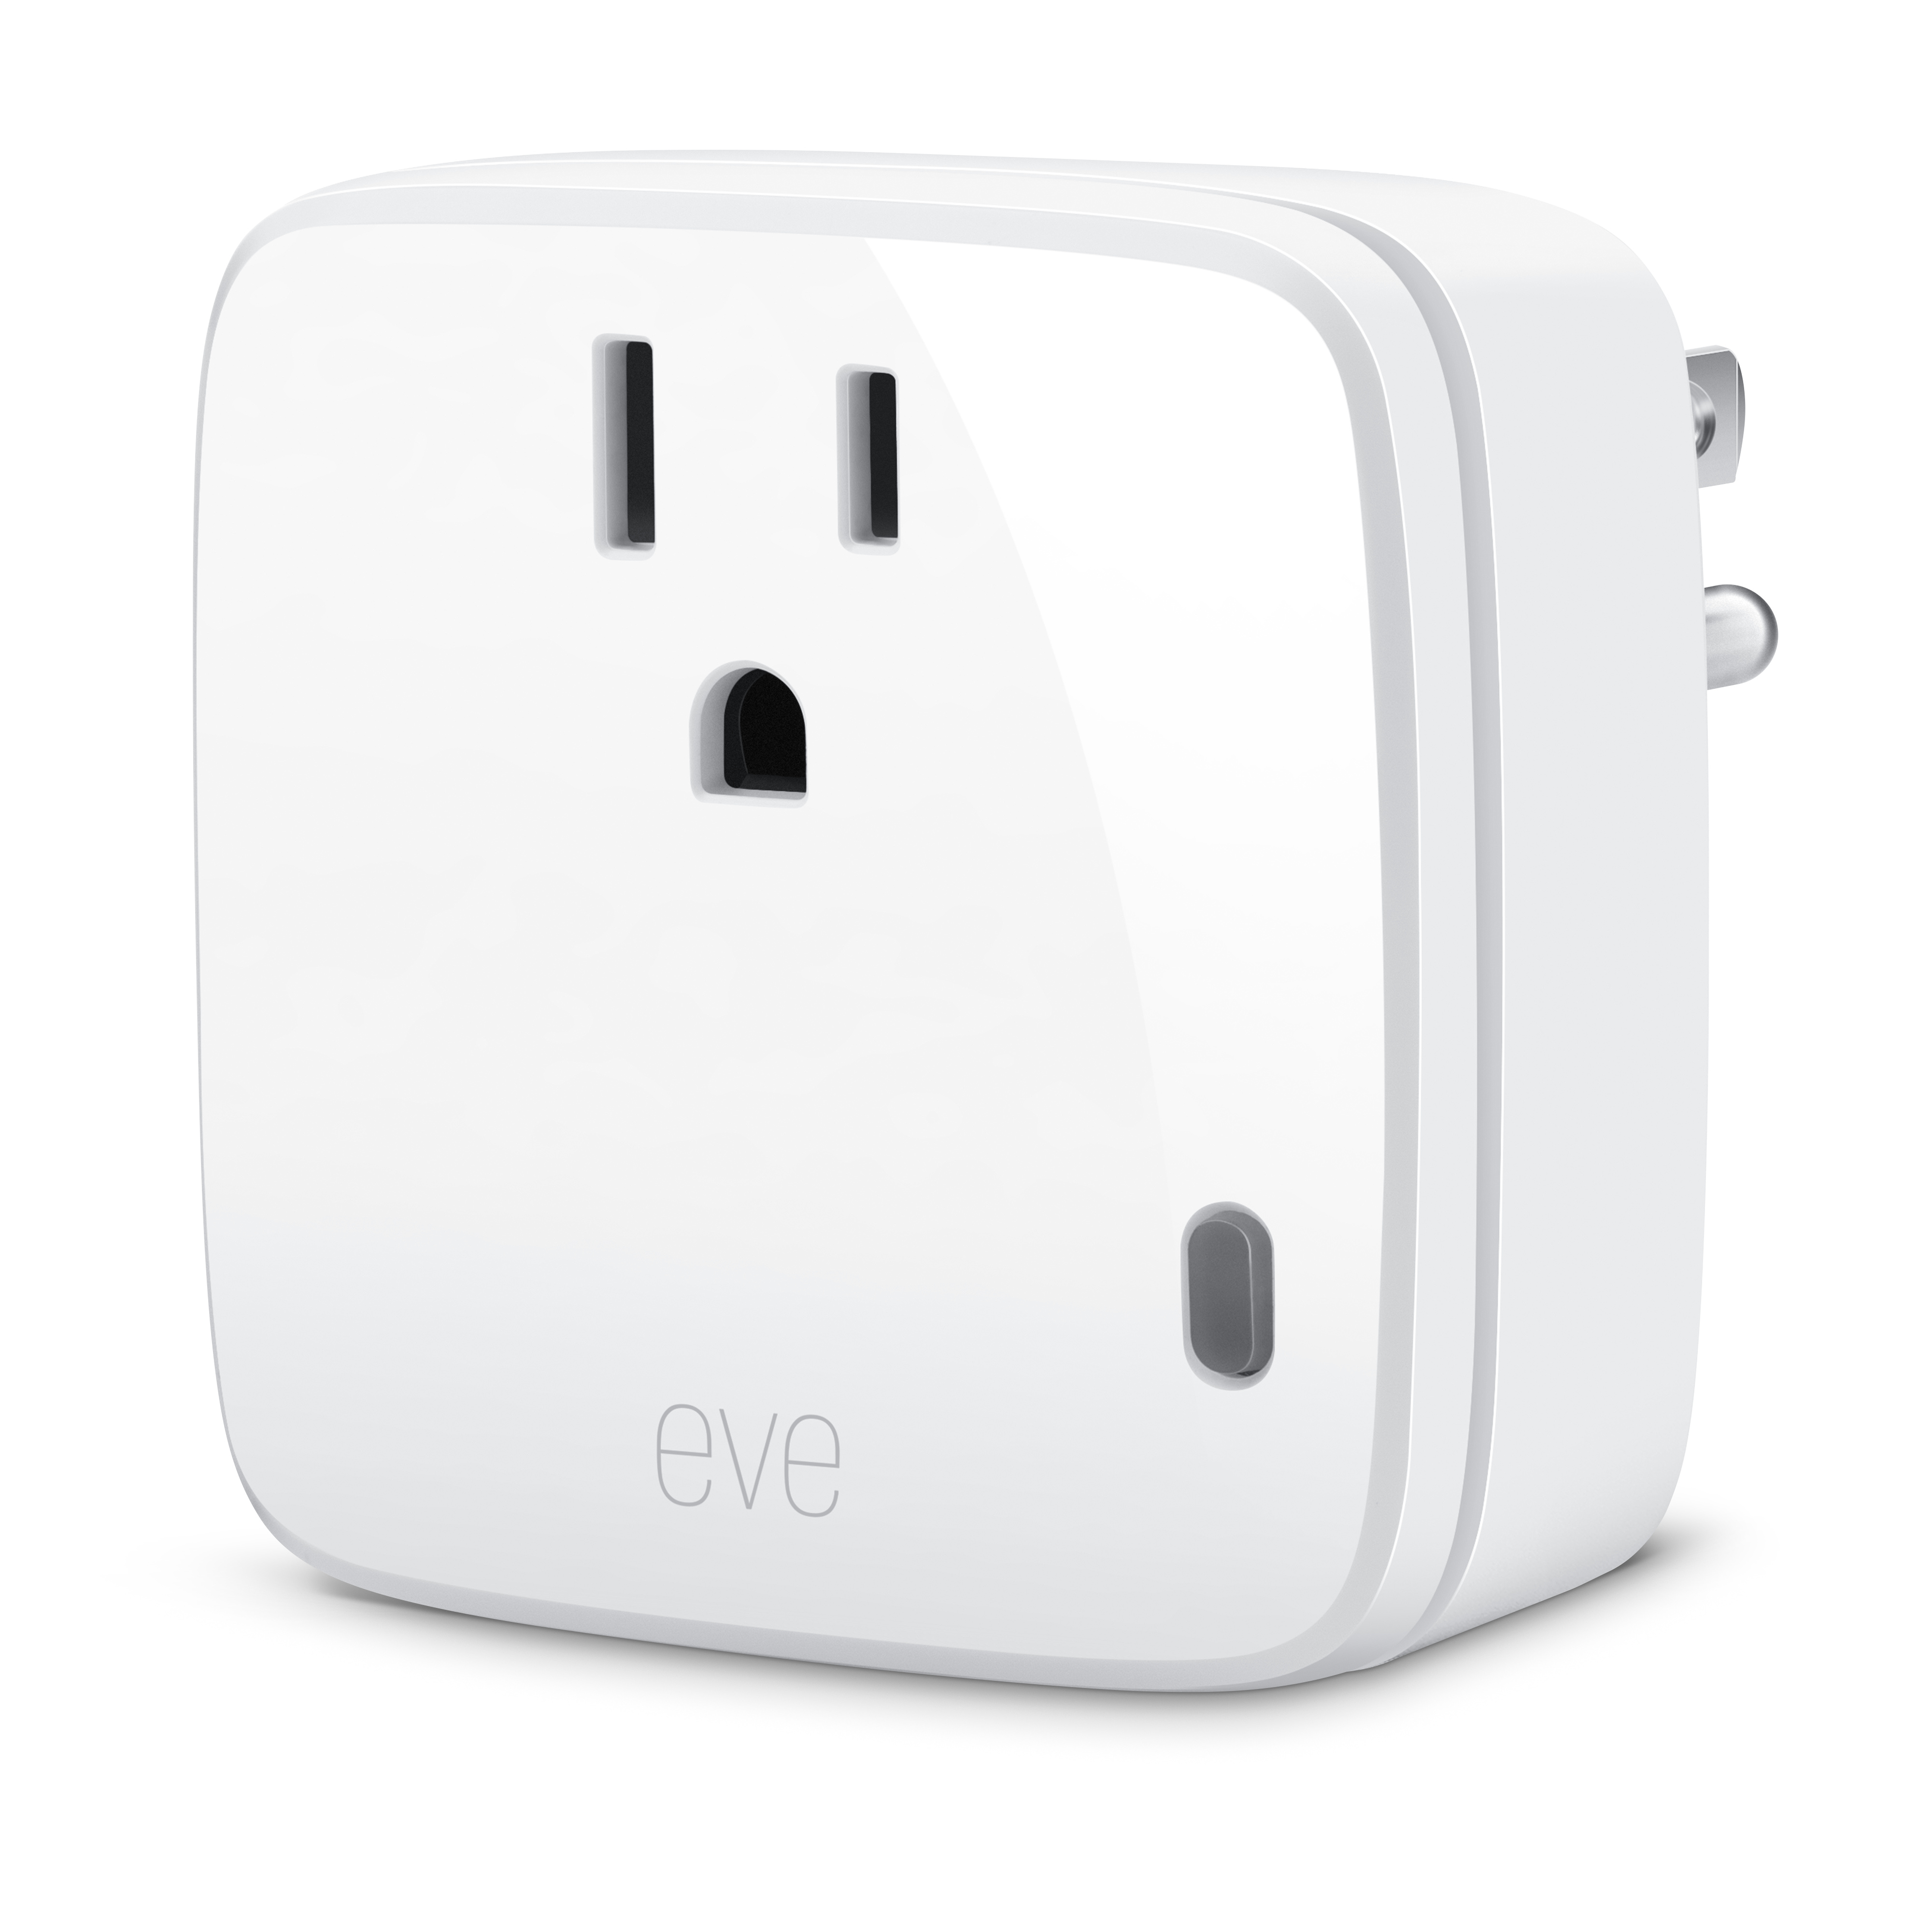 Questions about Eve Energy - Education - Apple (CA)